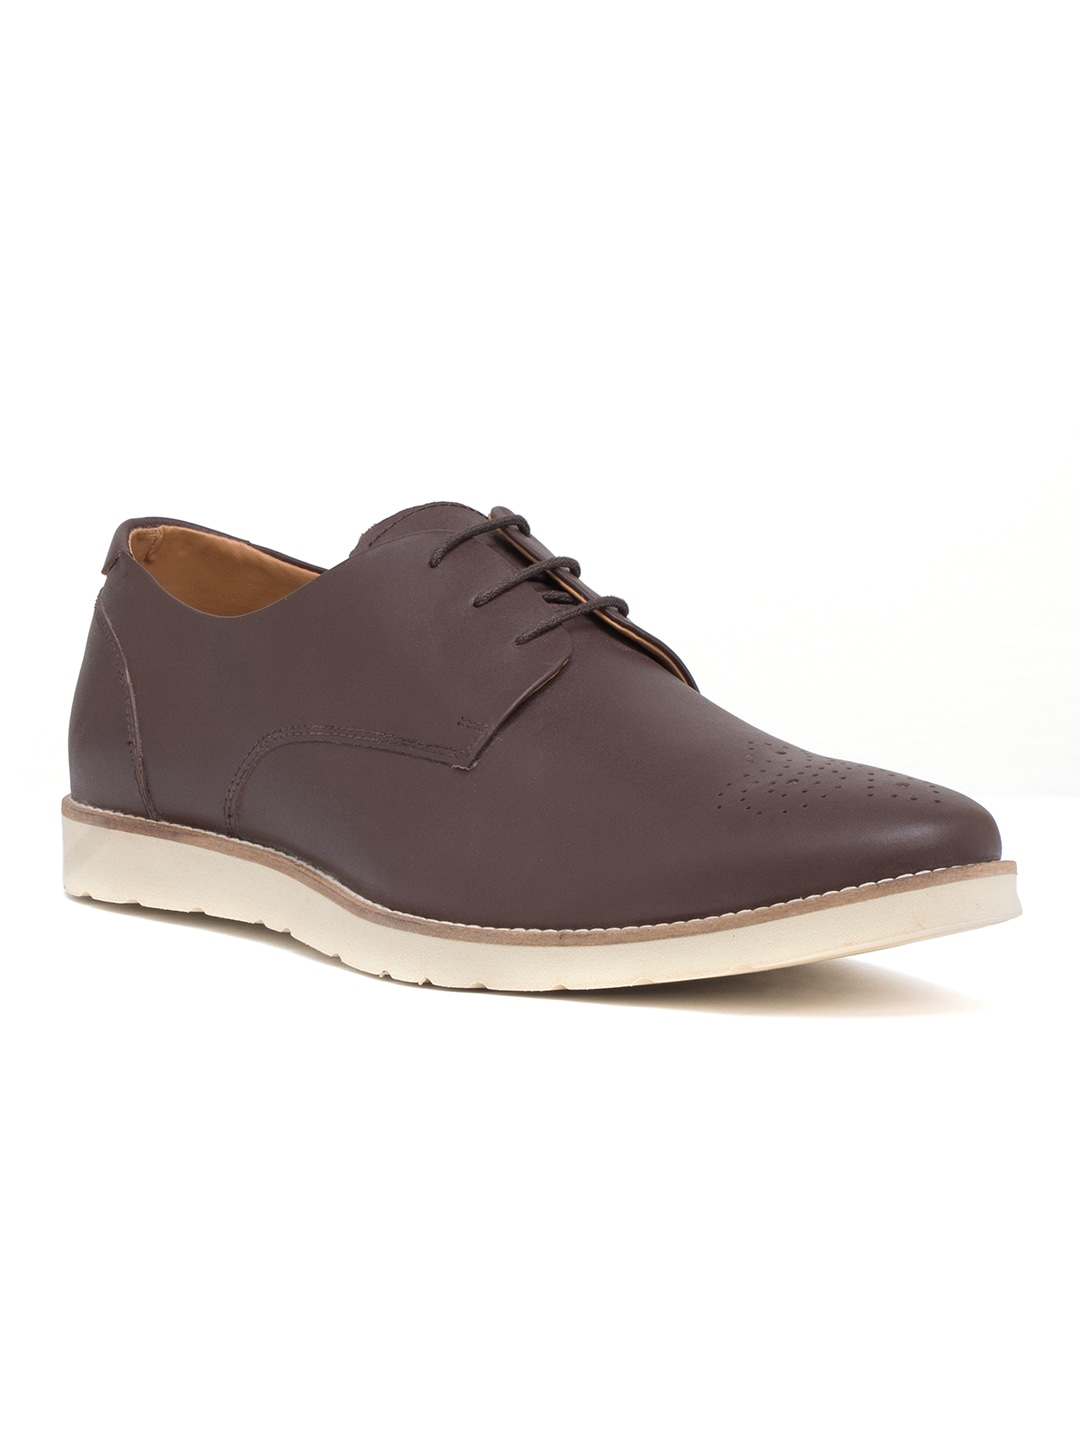 978a58791bc Bata Casual Shoes - Buy Bata Casual Shoes online in India